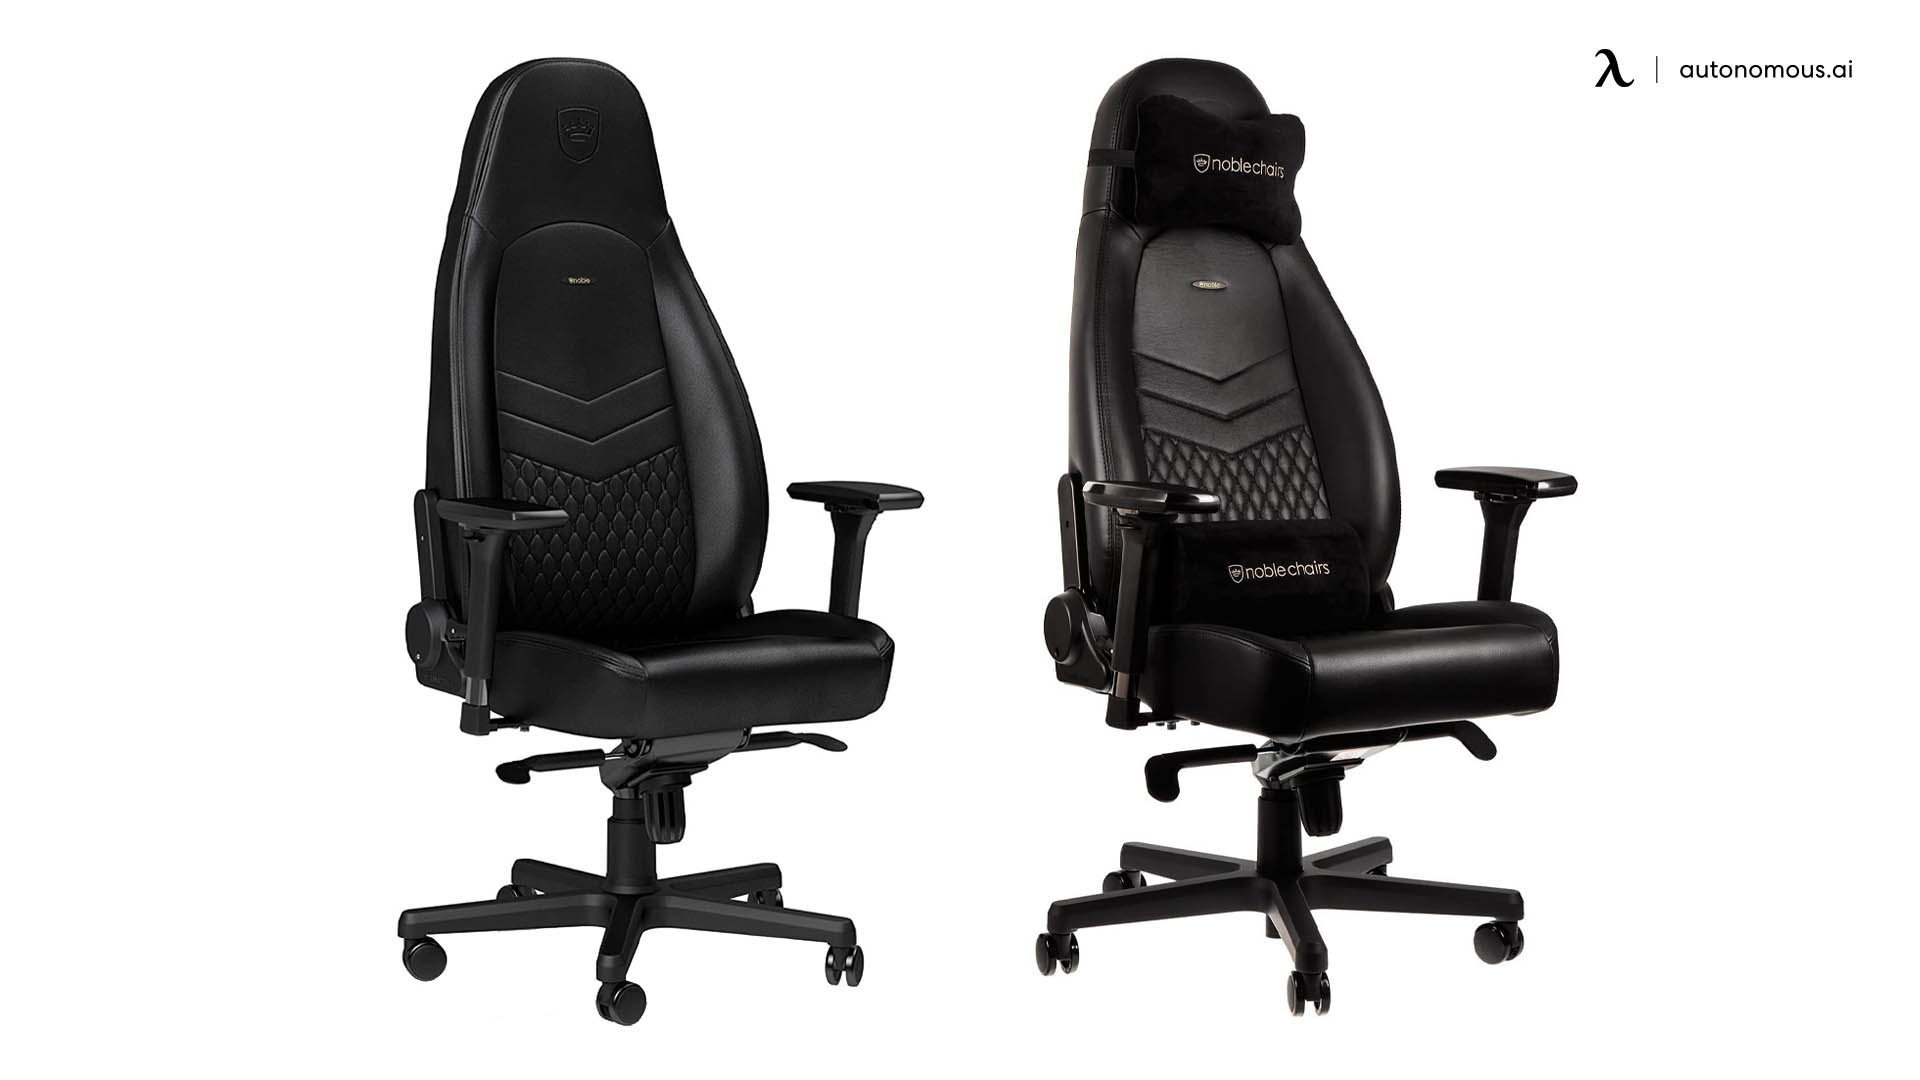 The Noblechairs Icon